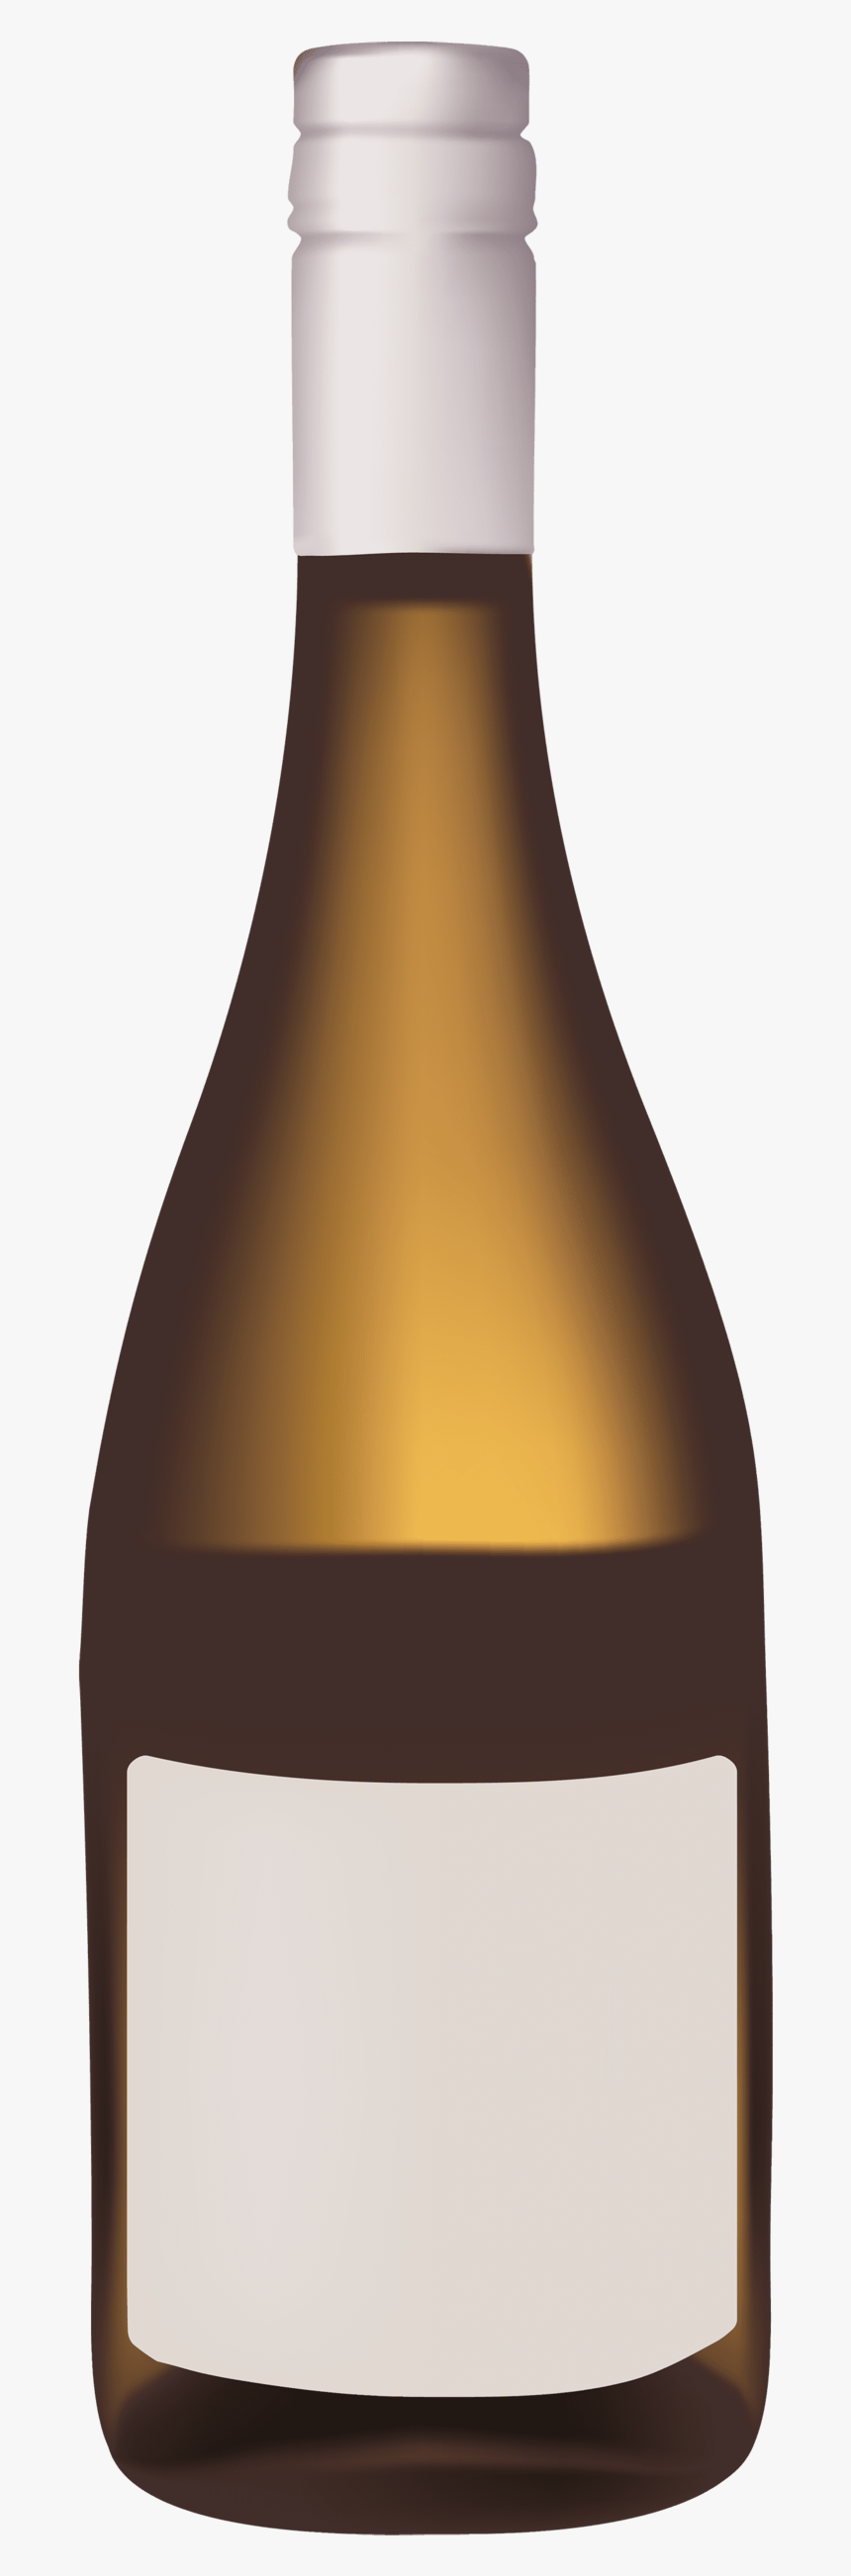 Gold Wine Bottle - Clip Art Wine Bottle Png, Transparent Png, Free Download